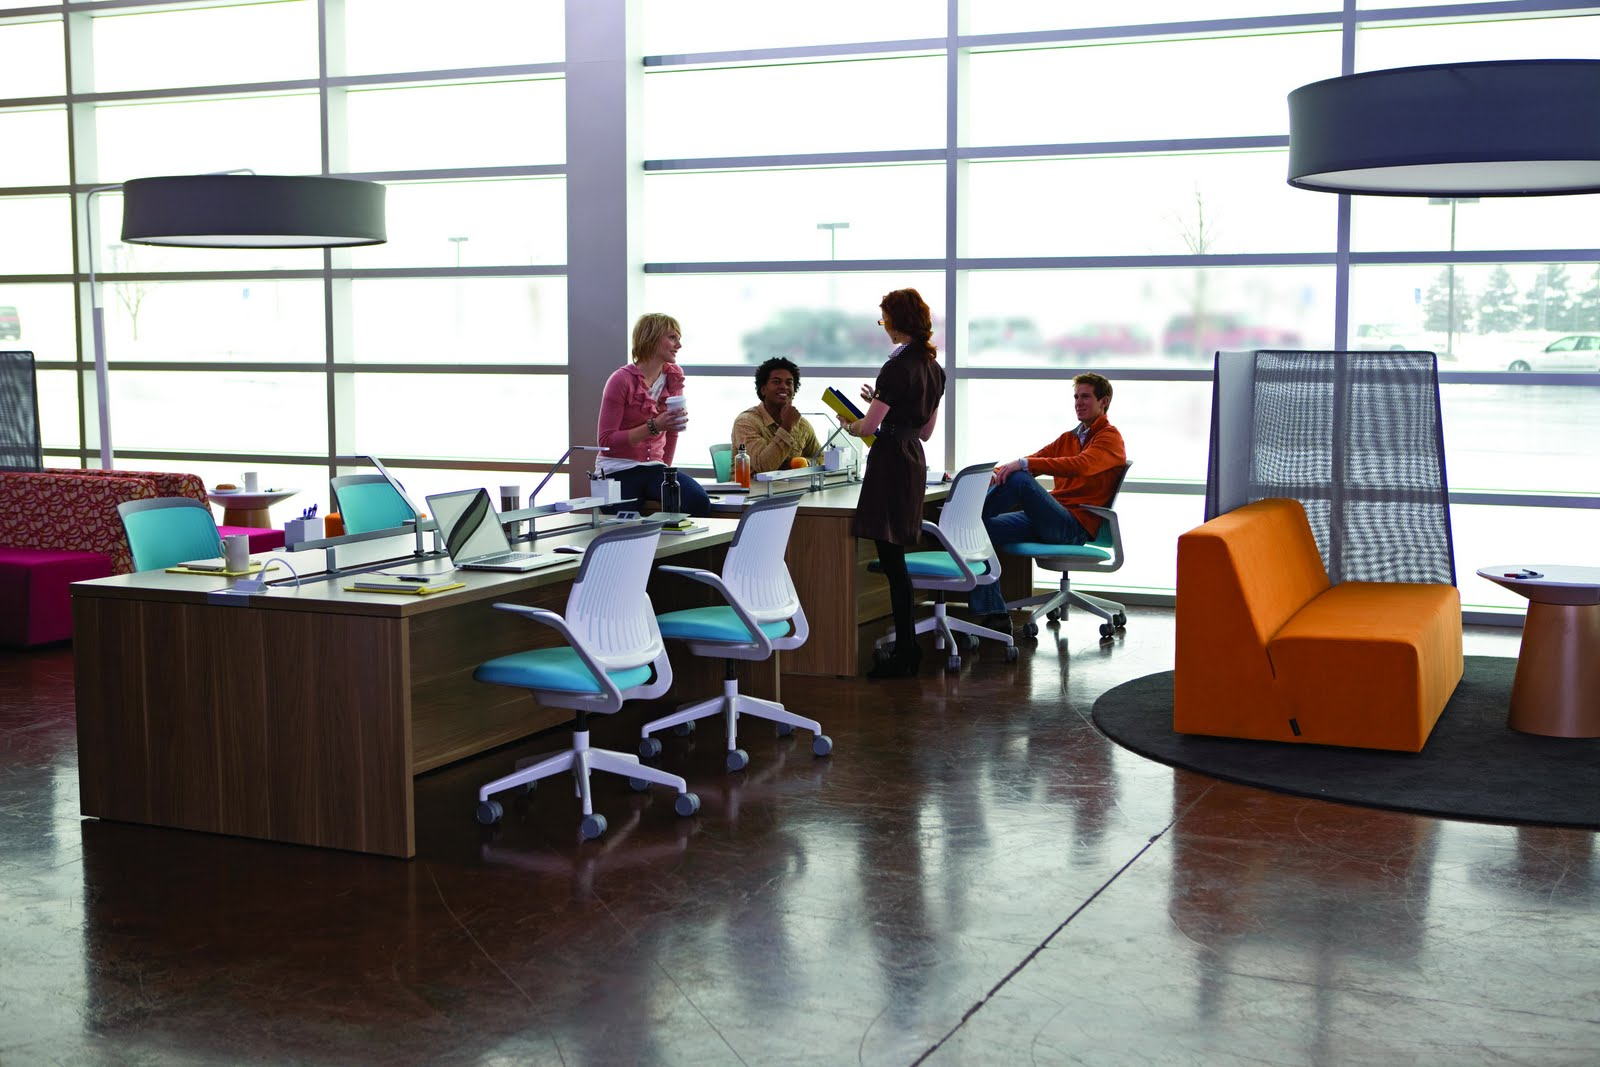 Turnstone Furniture Great For Group WorkTurnstone Makes Affordable,  Sustainable And Colorful Office Furniture For Startups And Small Business  Turnstone Logo